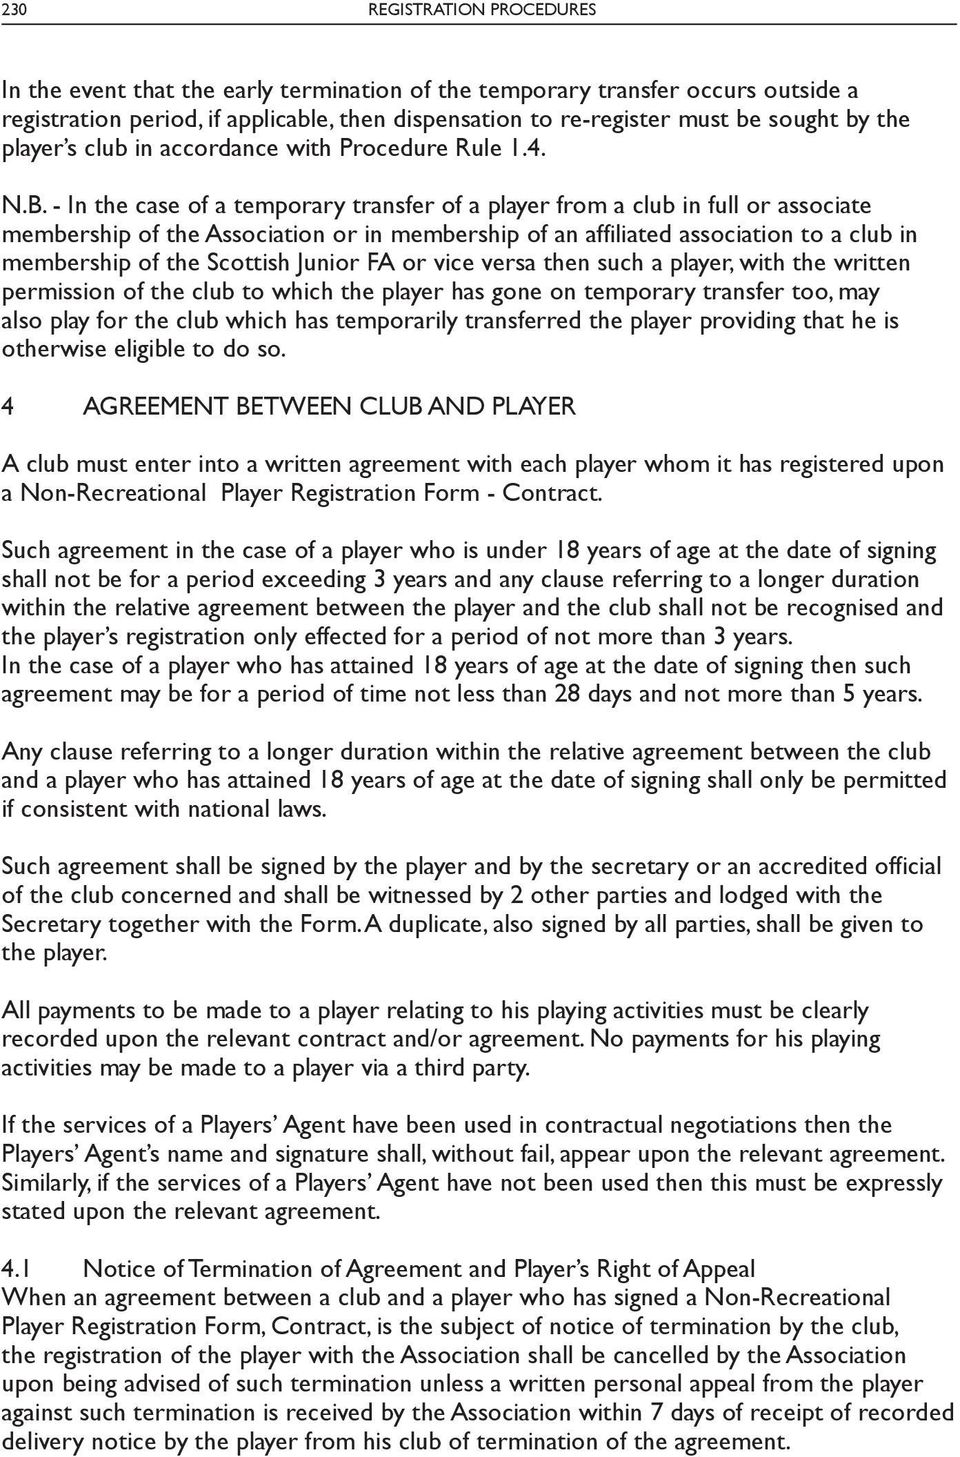 - In the case of a temporary transfer of a player from a club in full or associate membership of the Association or in membership of an affiliated association to a club in membership of the Scottish